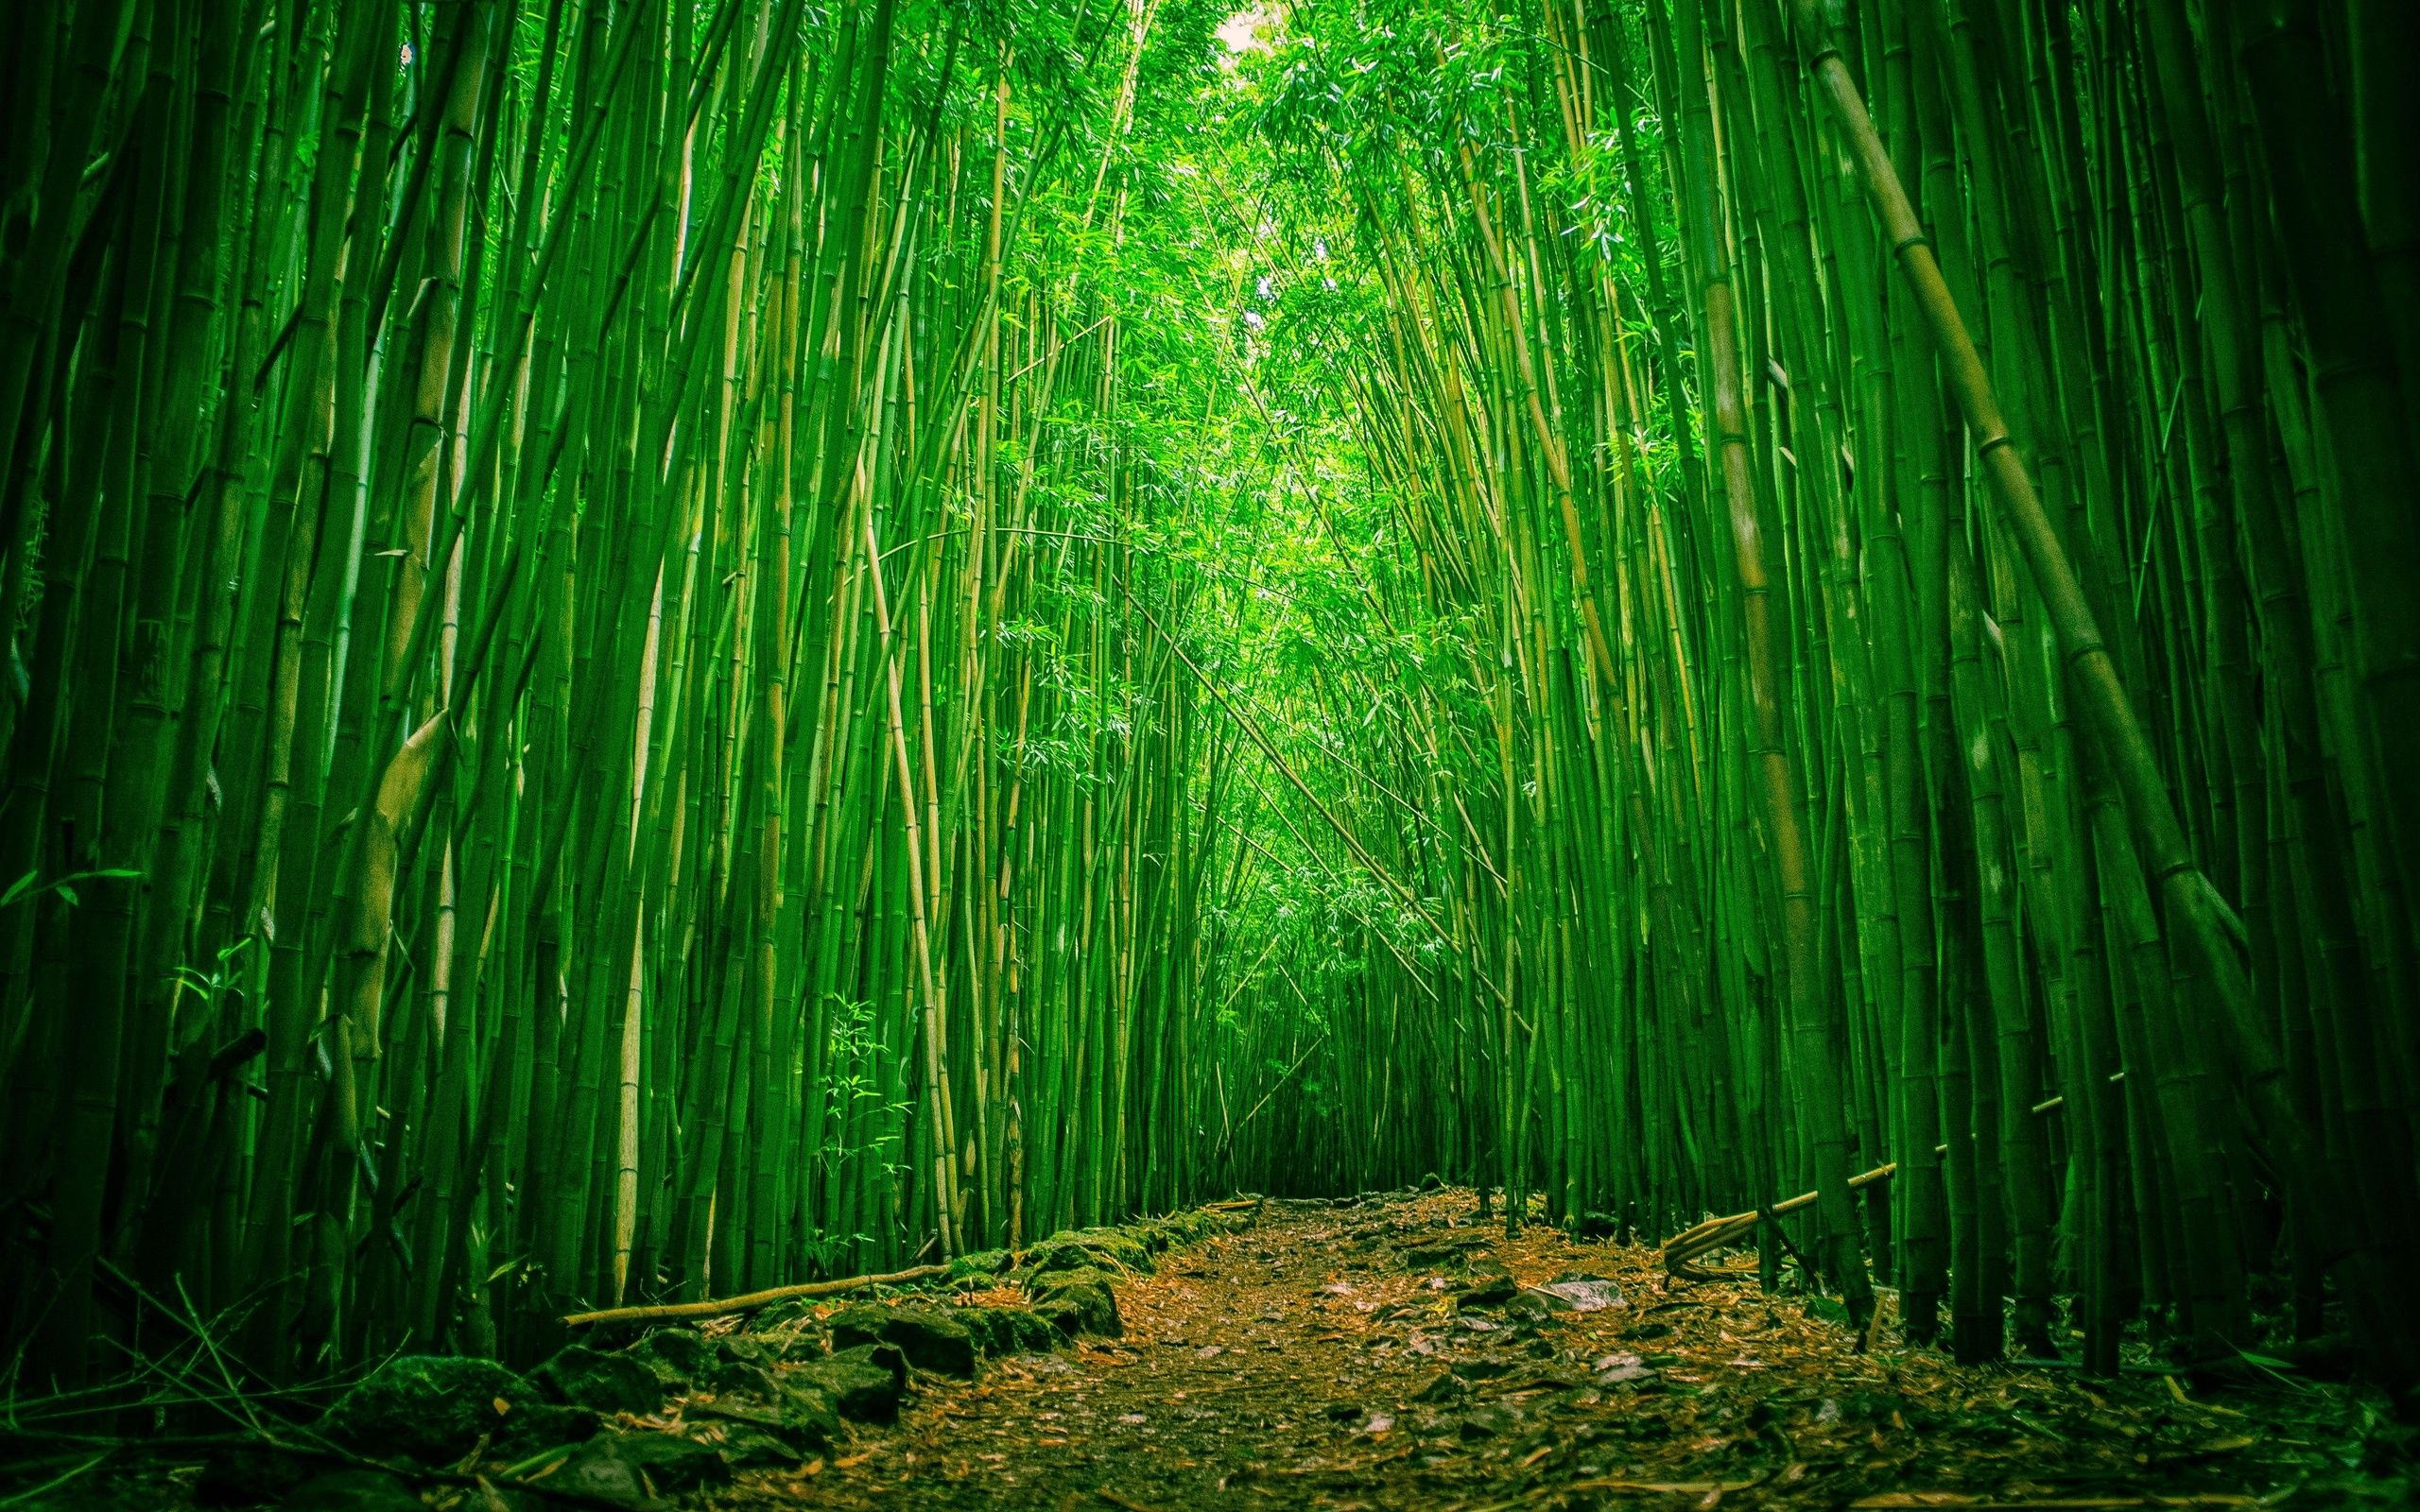 Bamboo Forest Wallpapers High Quality Download Free Land Views